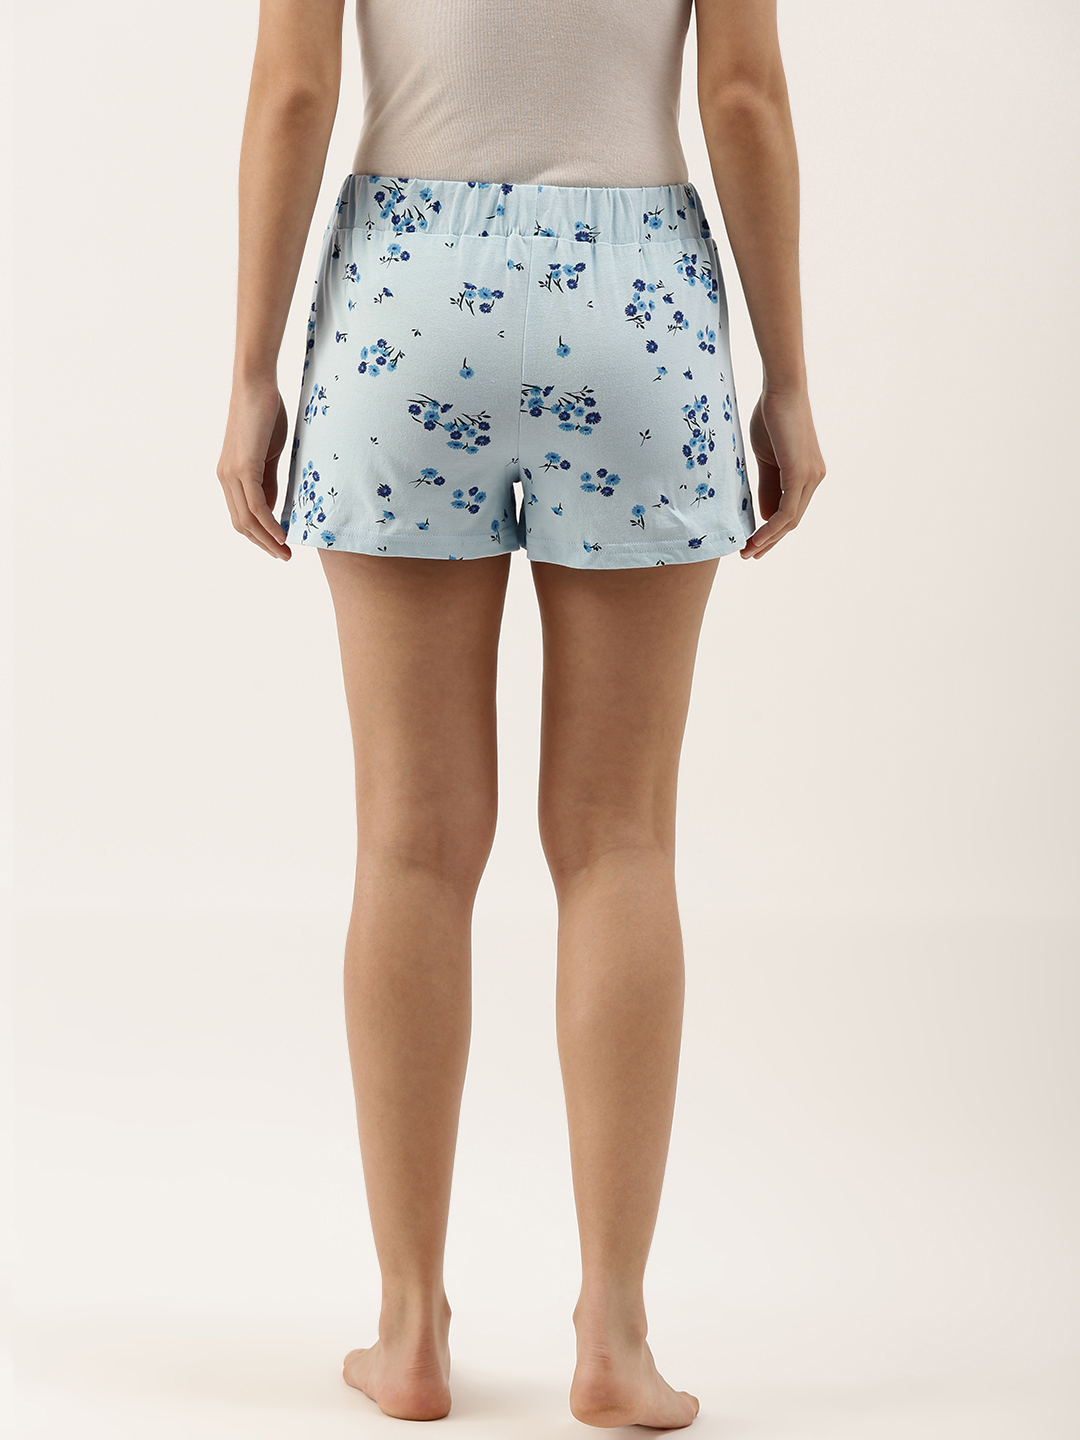 Slumber Jill Bleached Apricot Shorts pack of 2